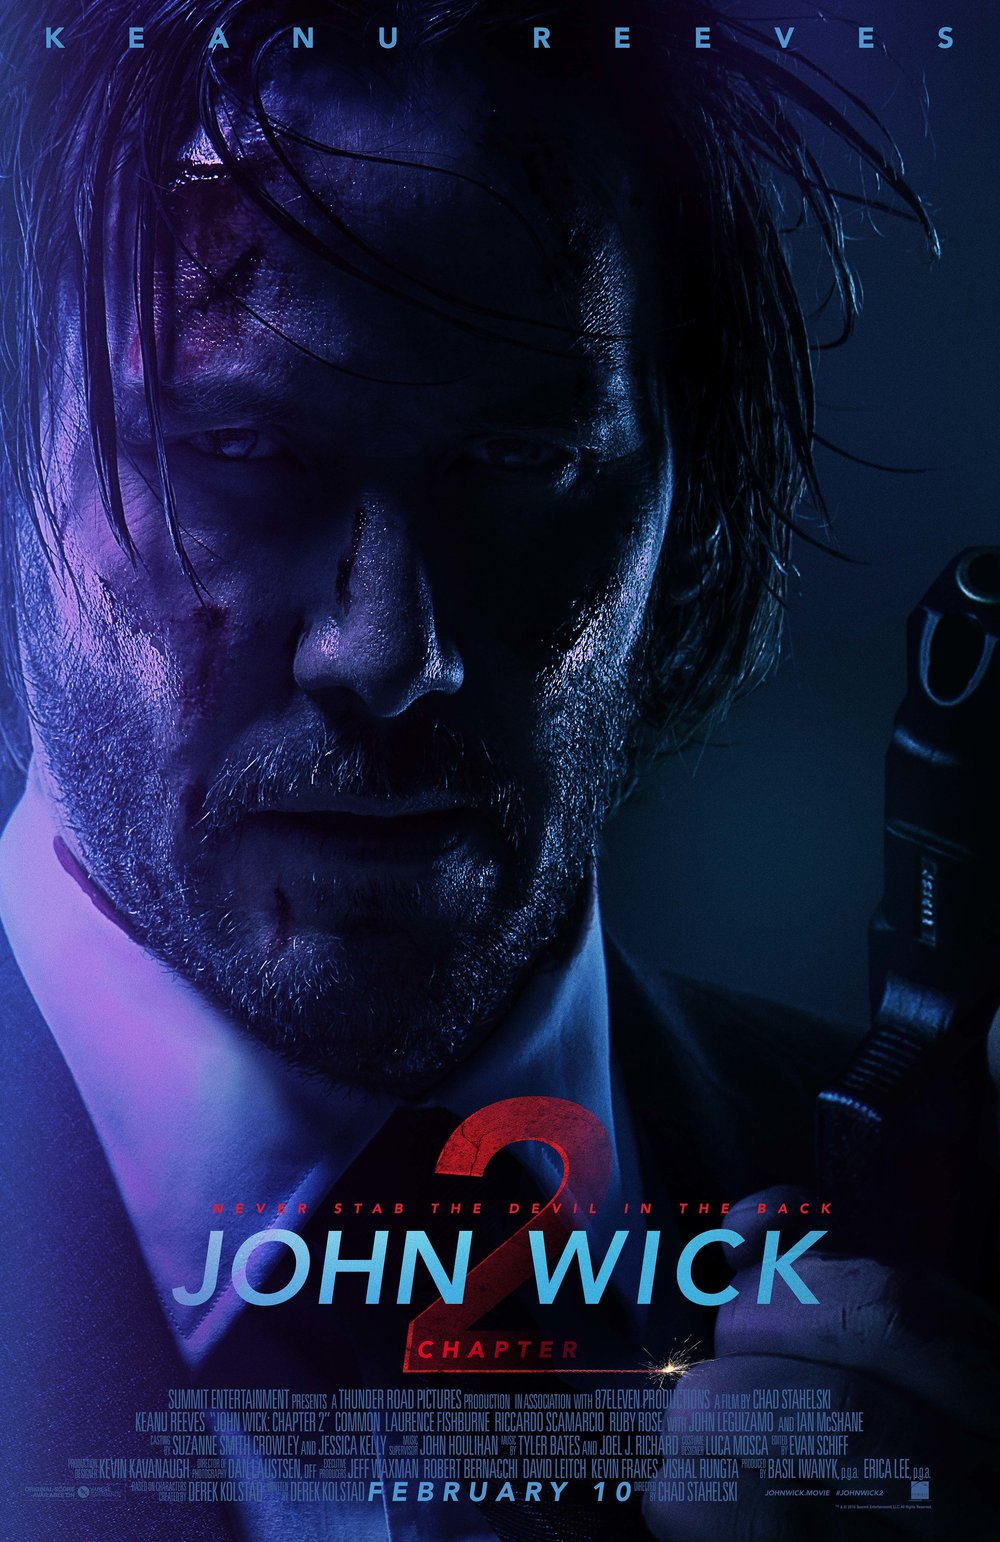 keanu-reeves-looks-pissed-in-new-poster-for-john-wick-chapter-21